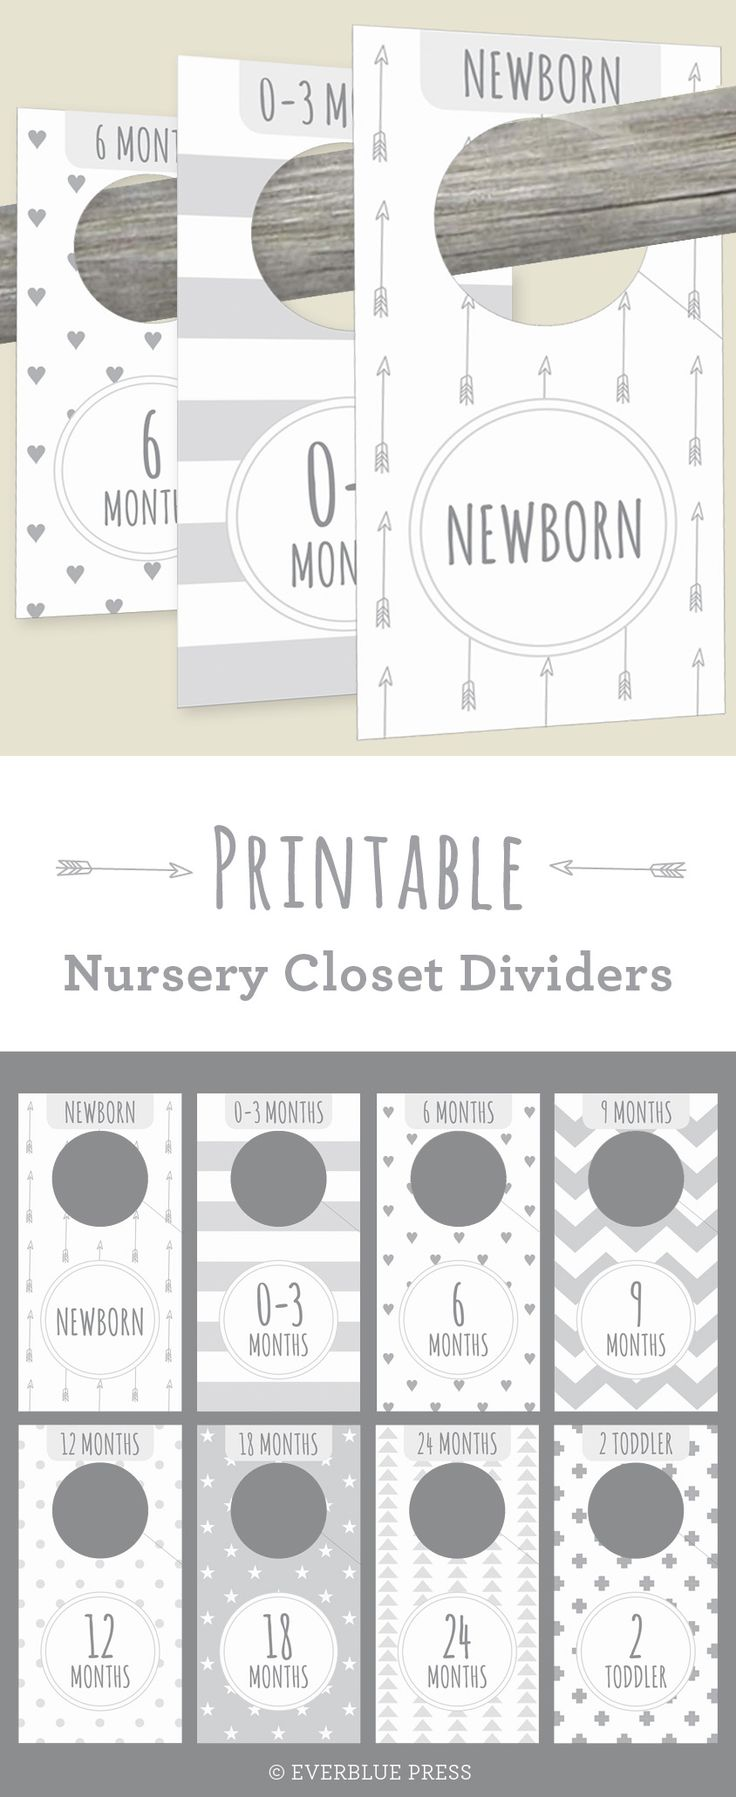 These cute Printable Nursery Closet Dividers in gender neutral gray patterns help organize your baby's clothes! Newborn decor from Everblue Press on etsy